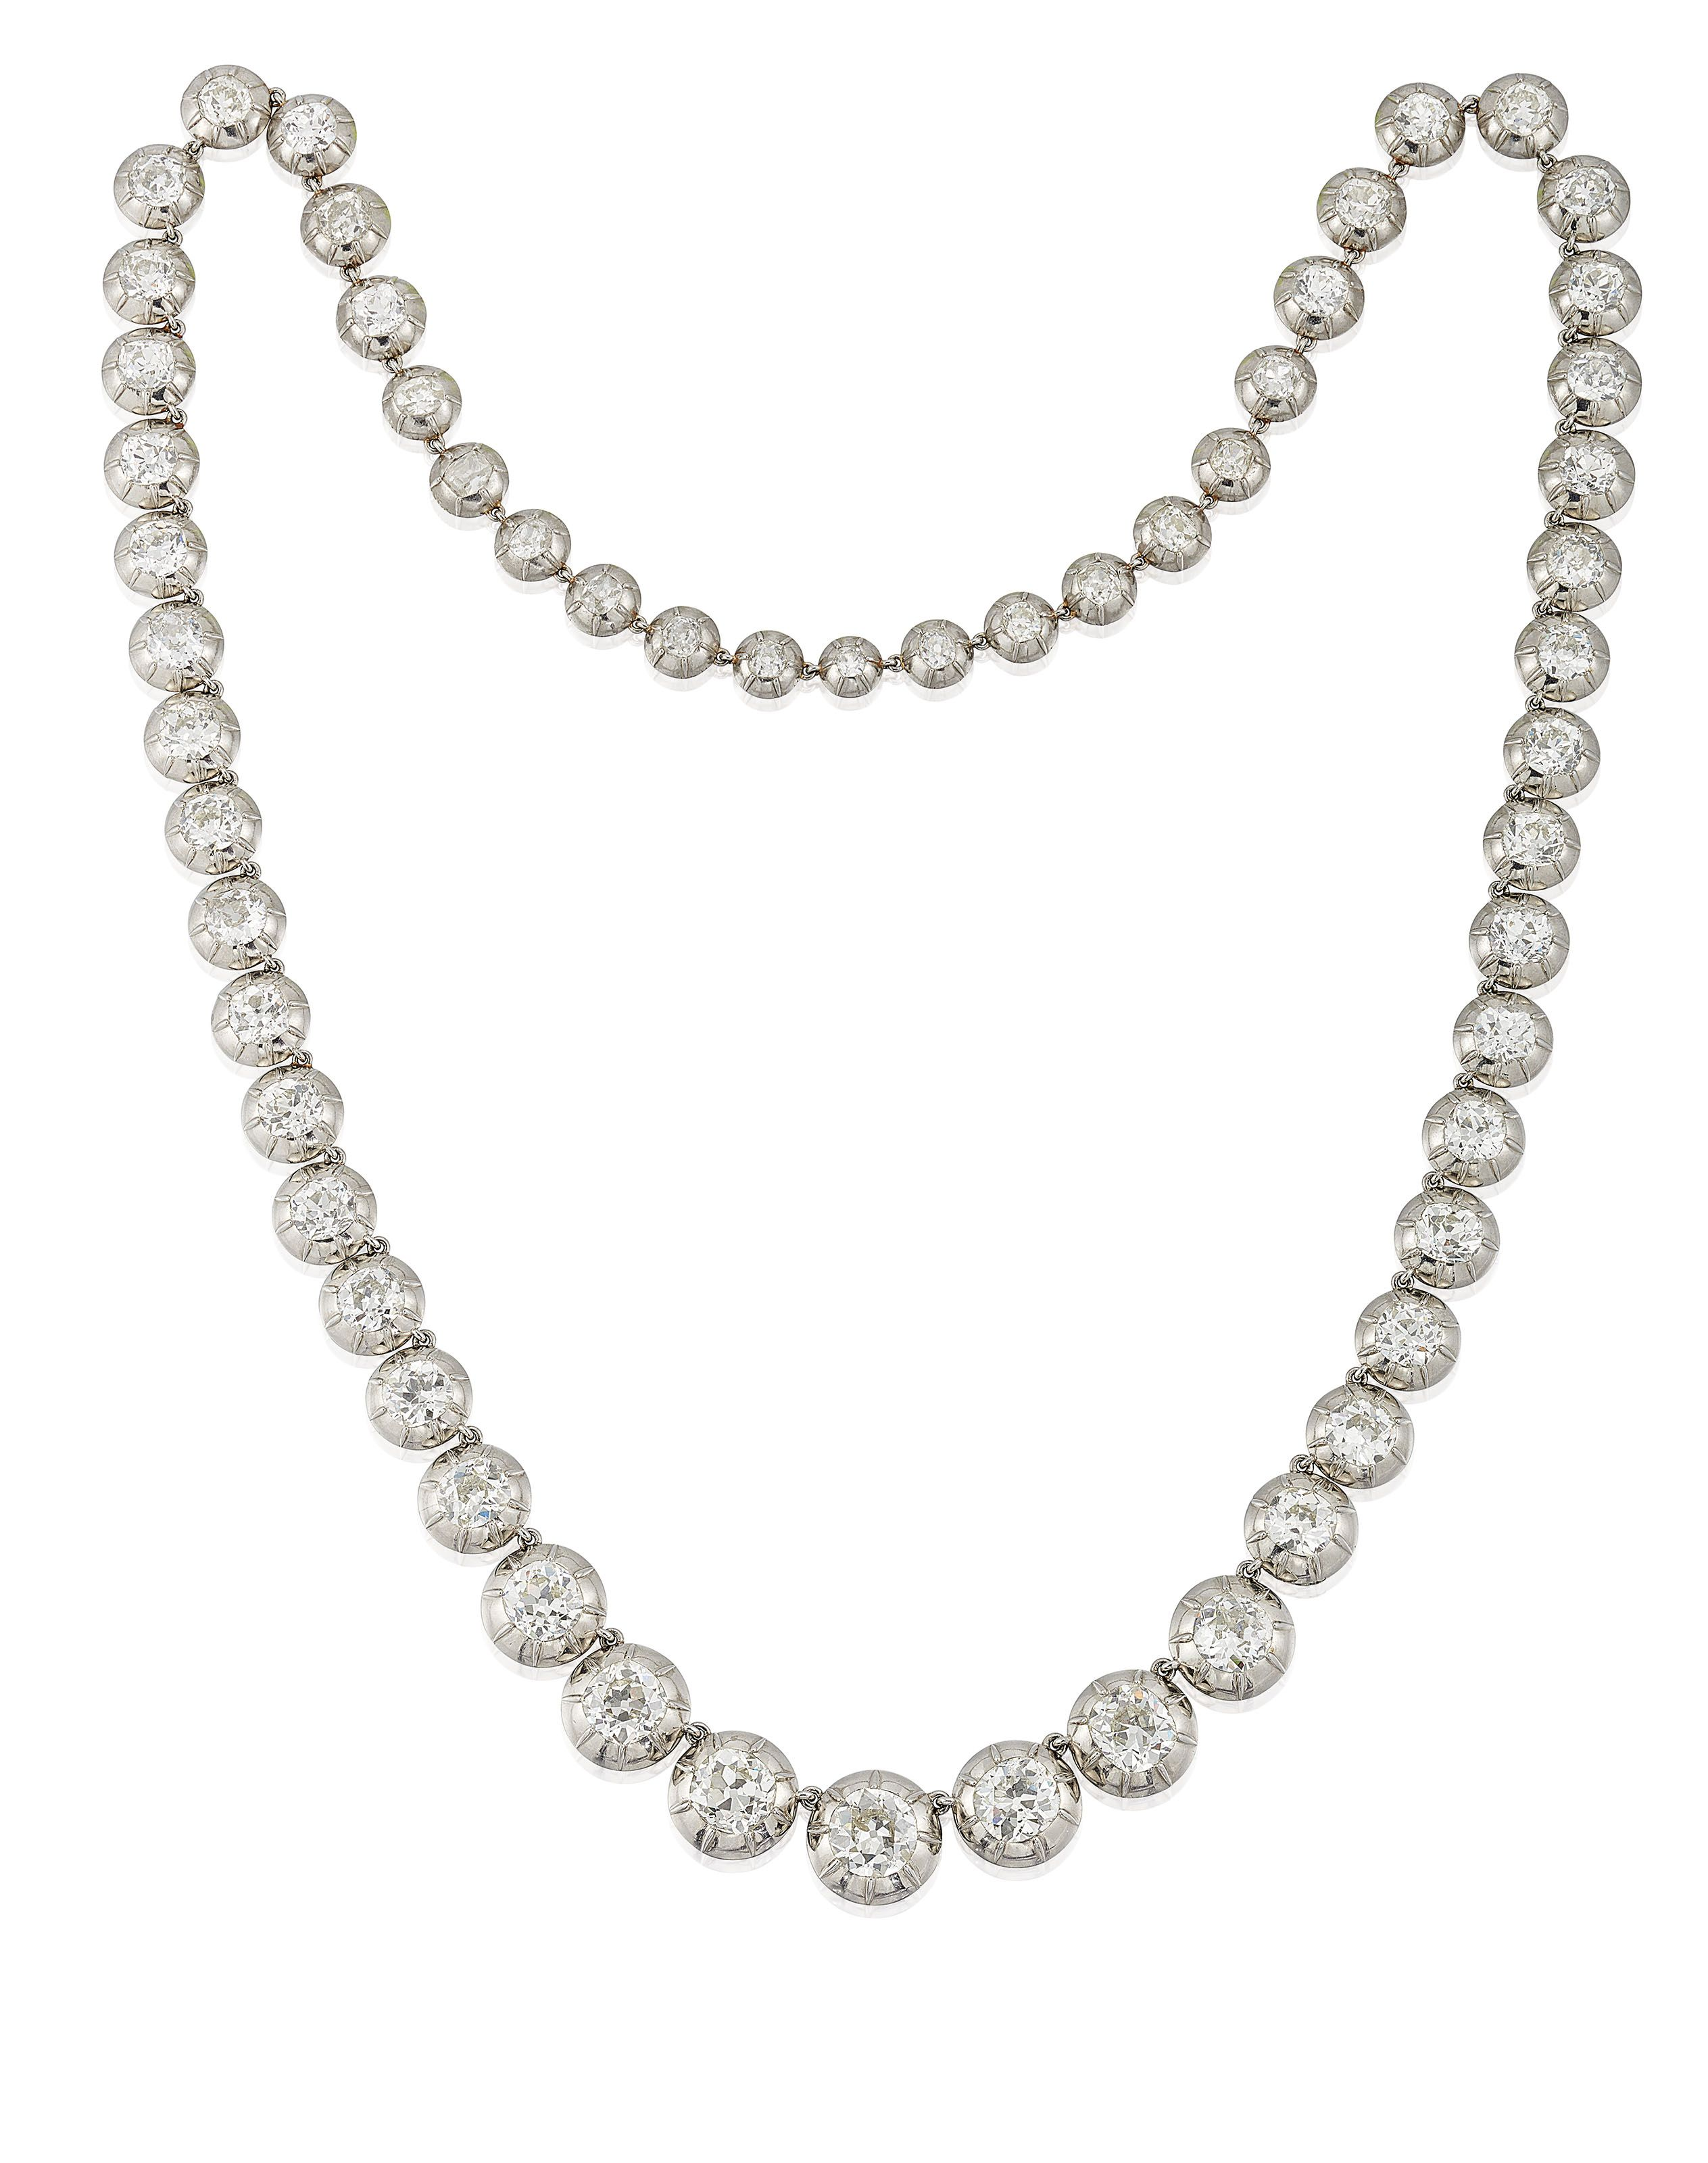 0cc4d759094 IMPRESSIVE EARLY 20TH CENTURY DIAMOND NECKLACE